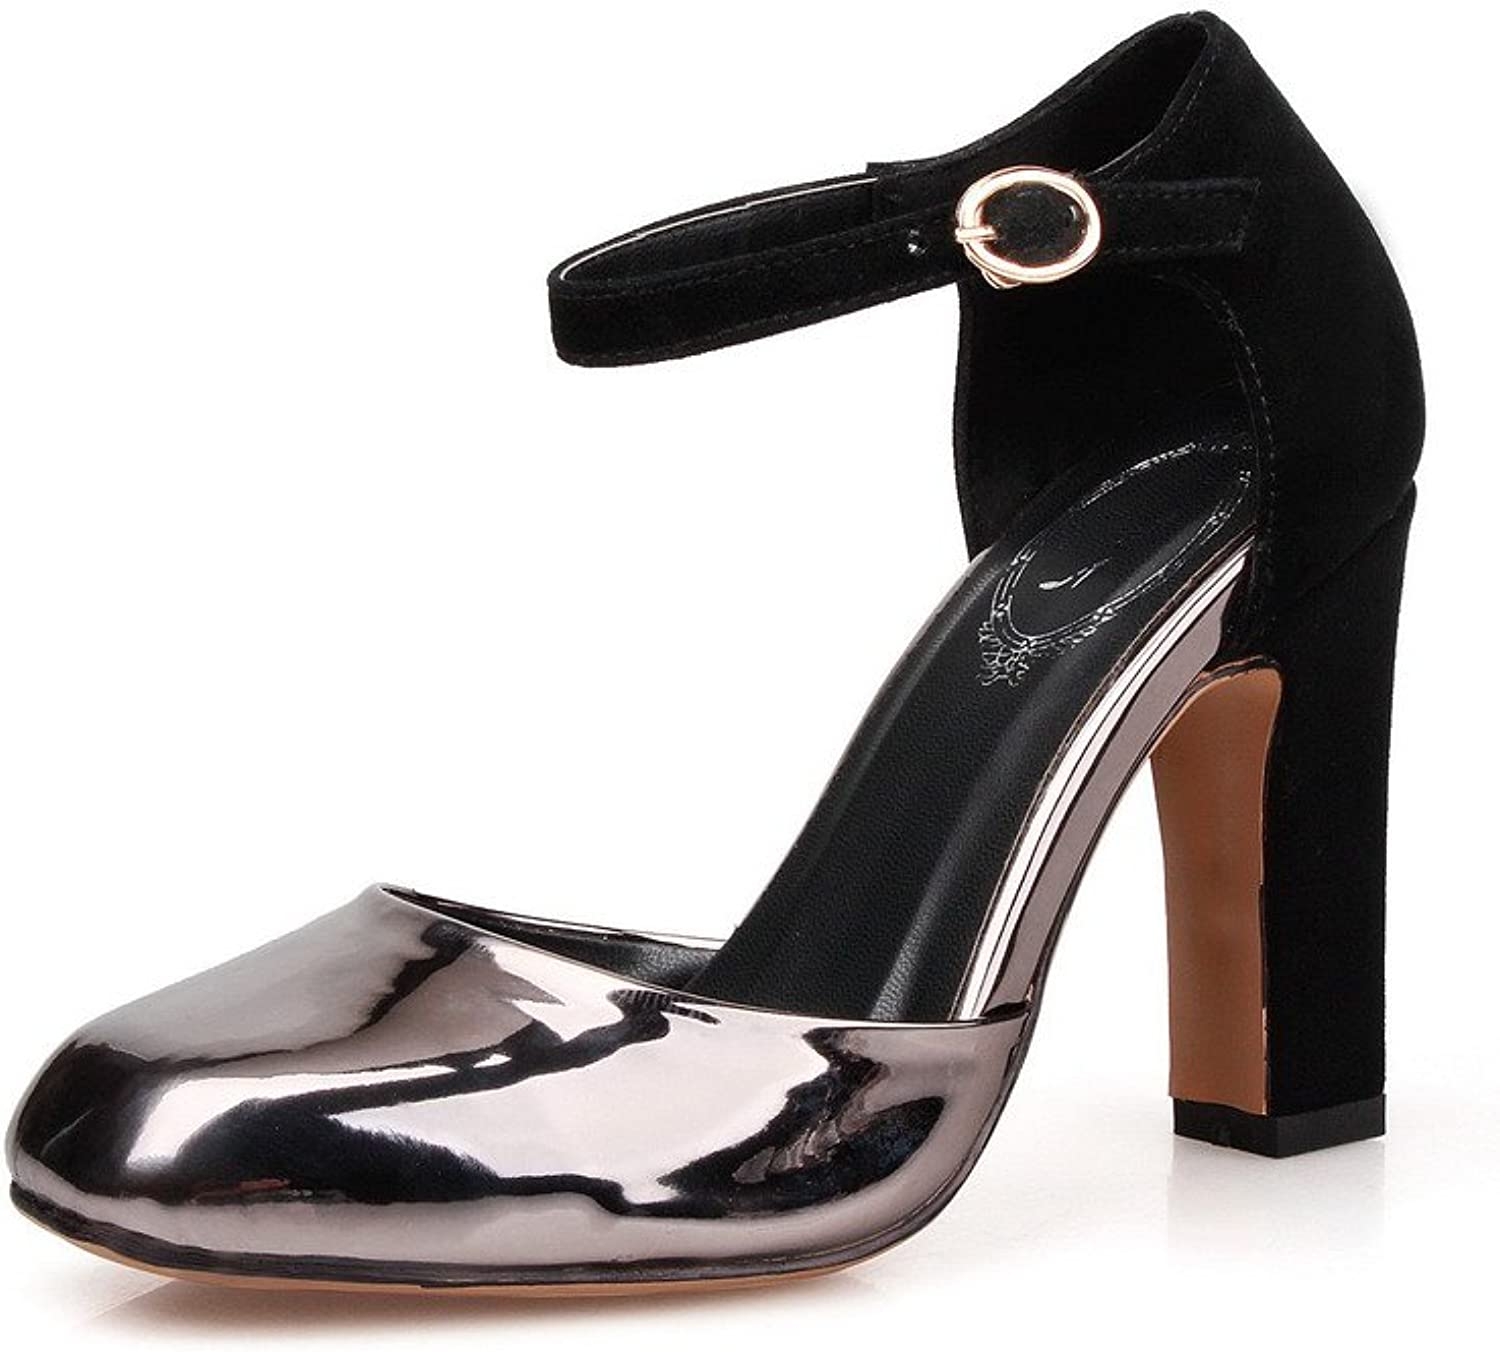 AmoonyFashion Women's Patent Leather Buckle Square Closed Toe High Heels Solid Pumps shoes